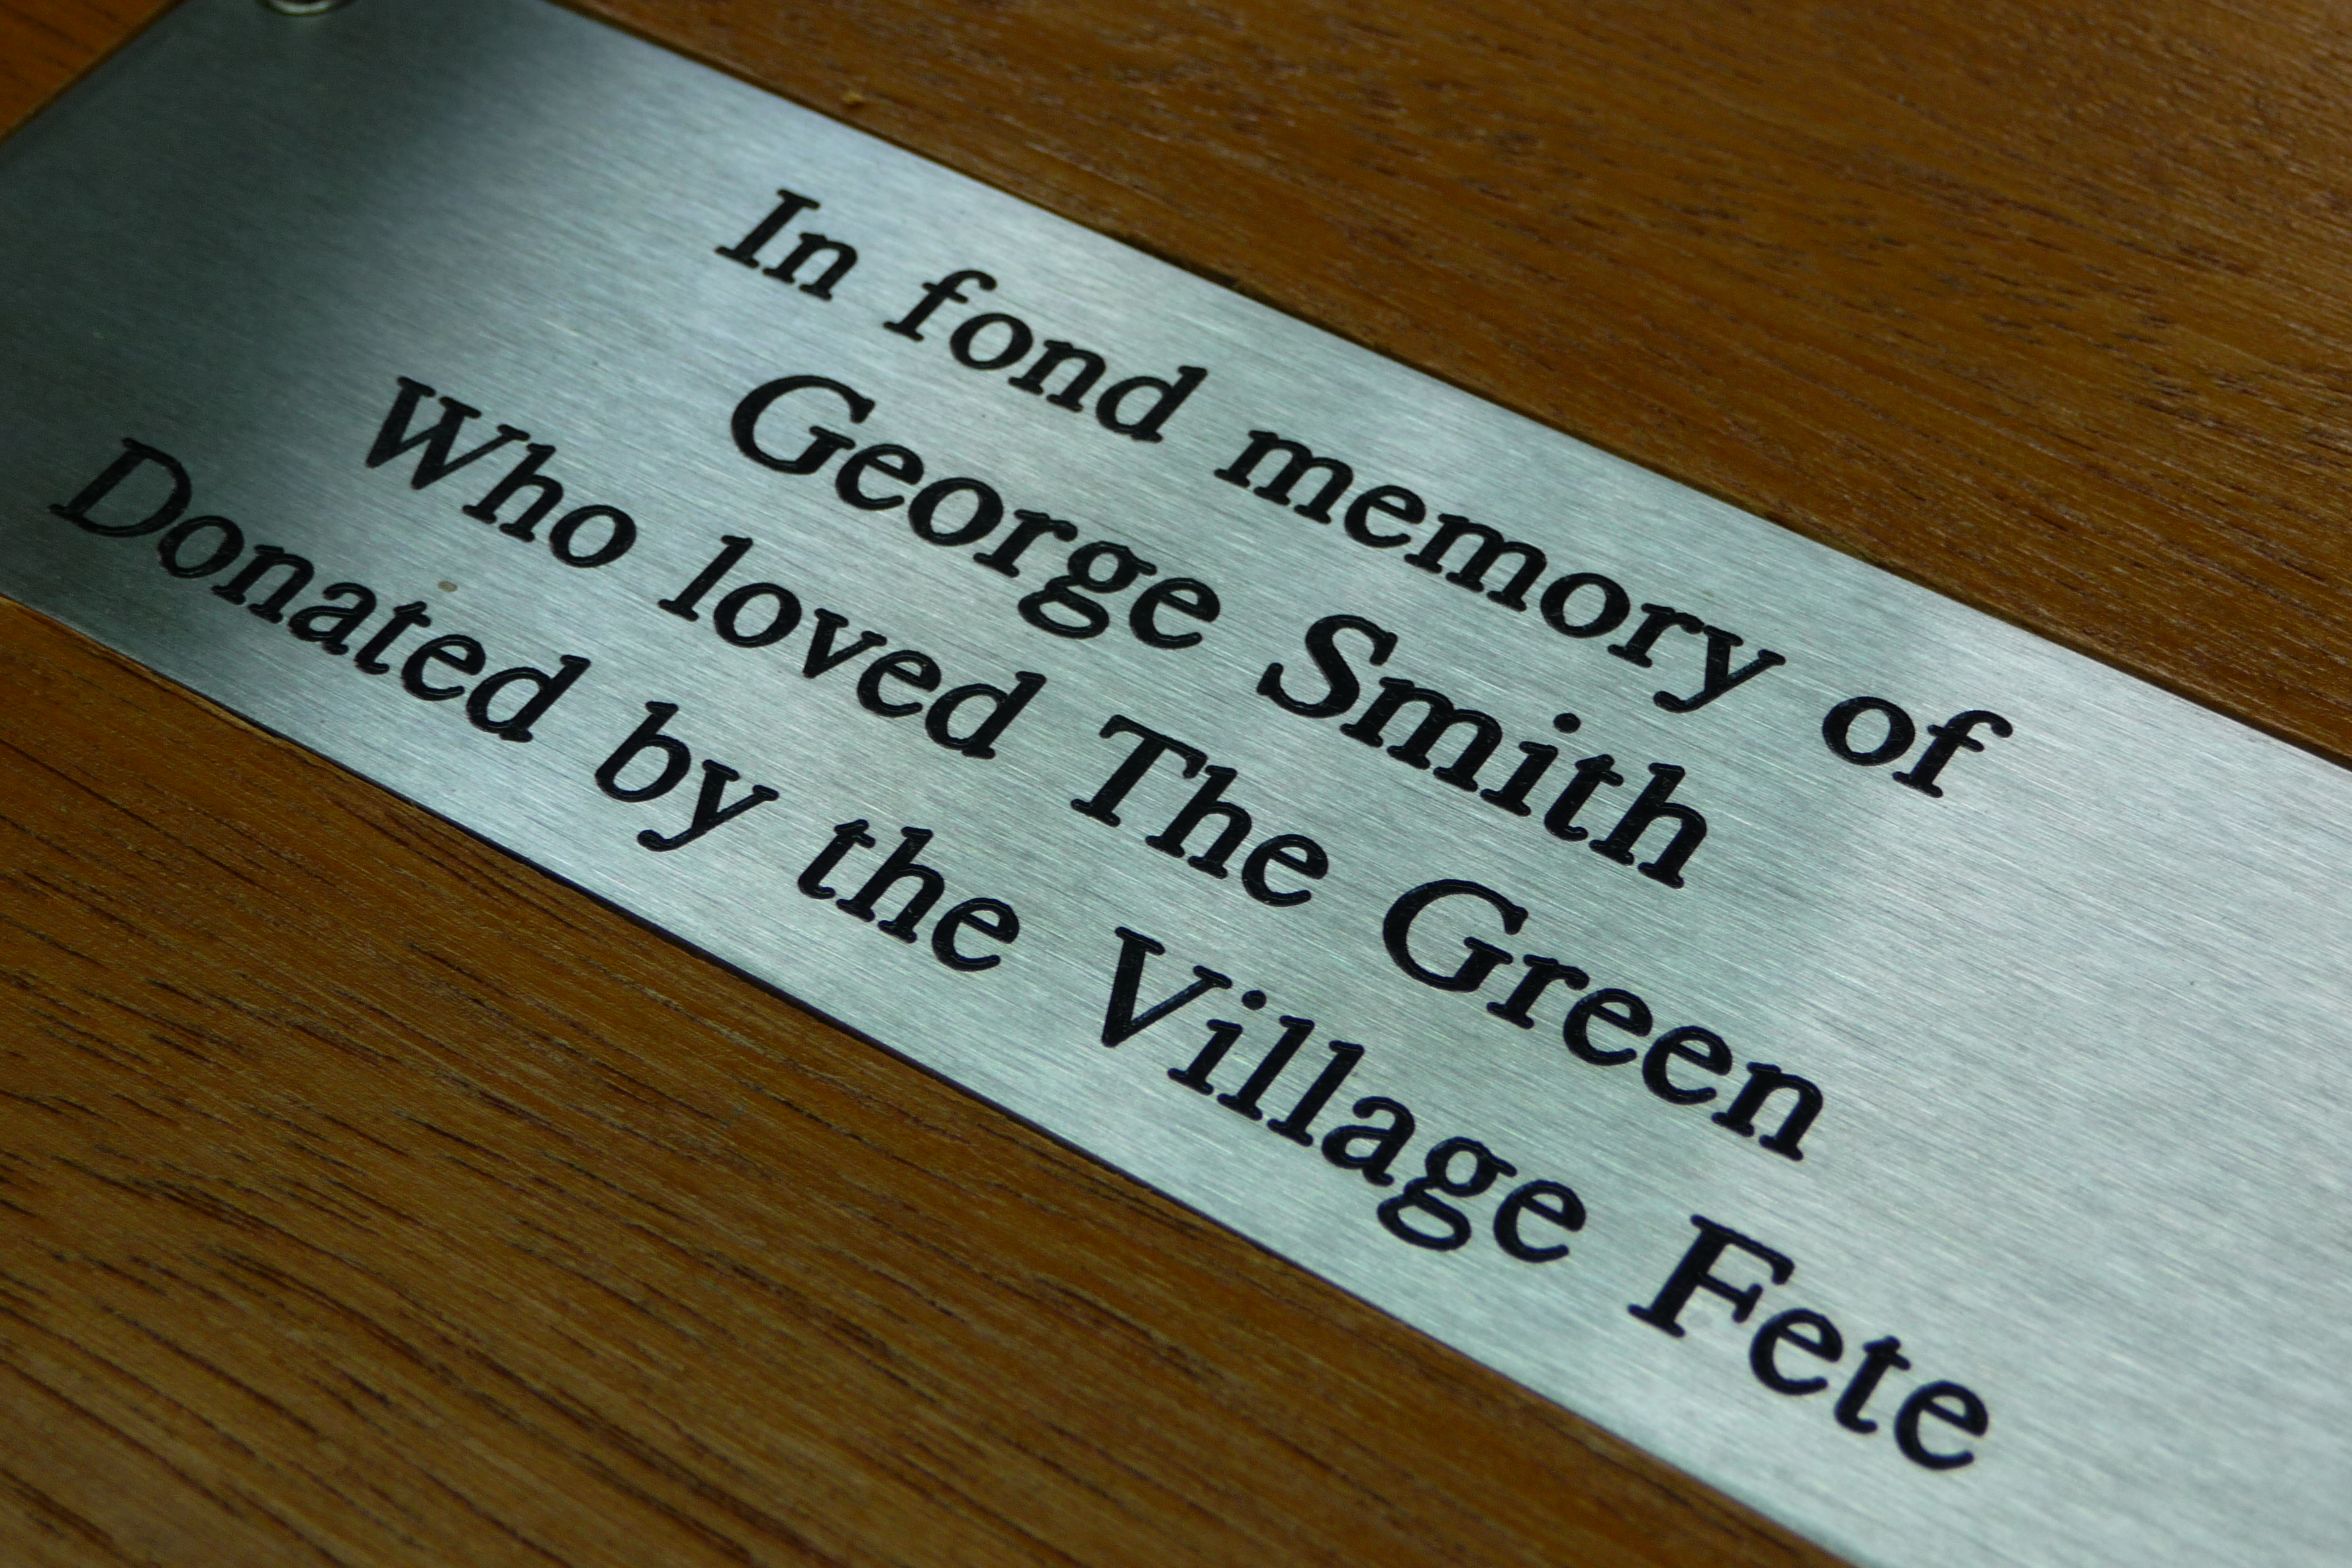 Stainless Steel engraved plaque